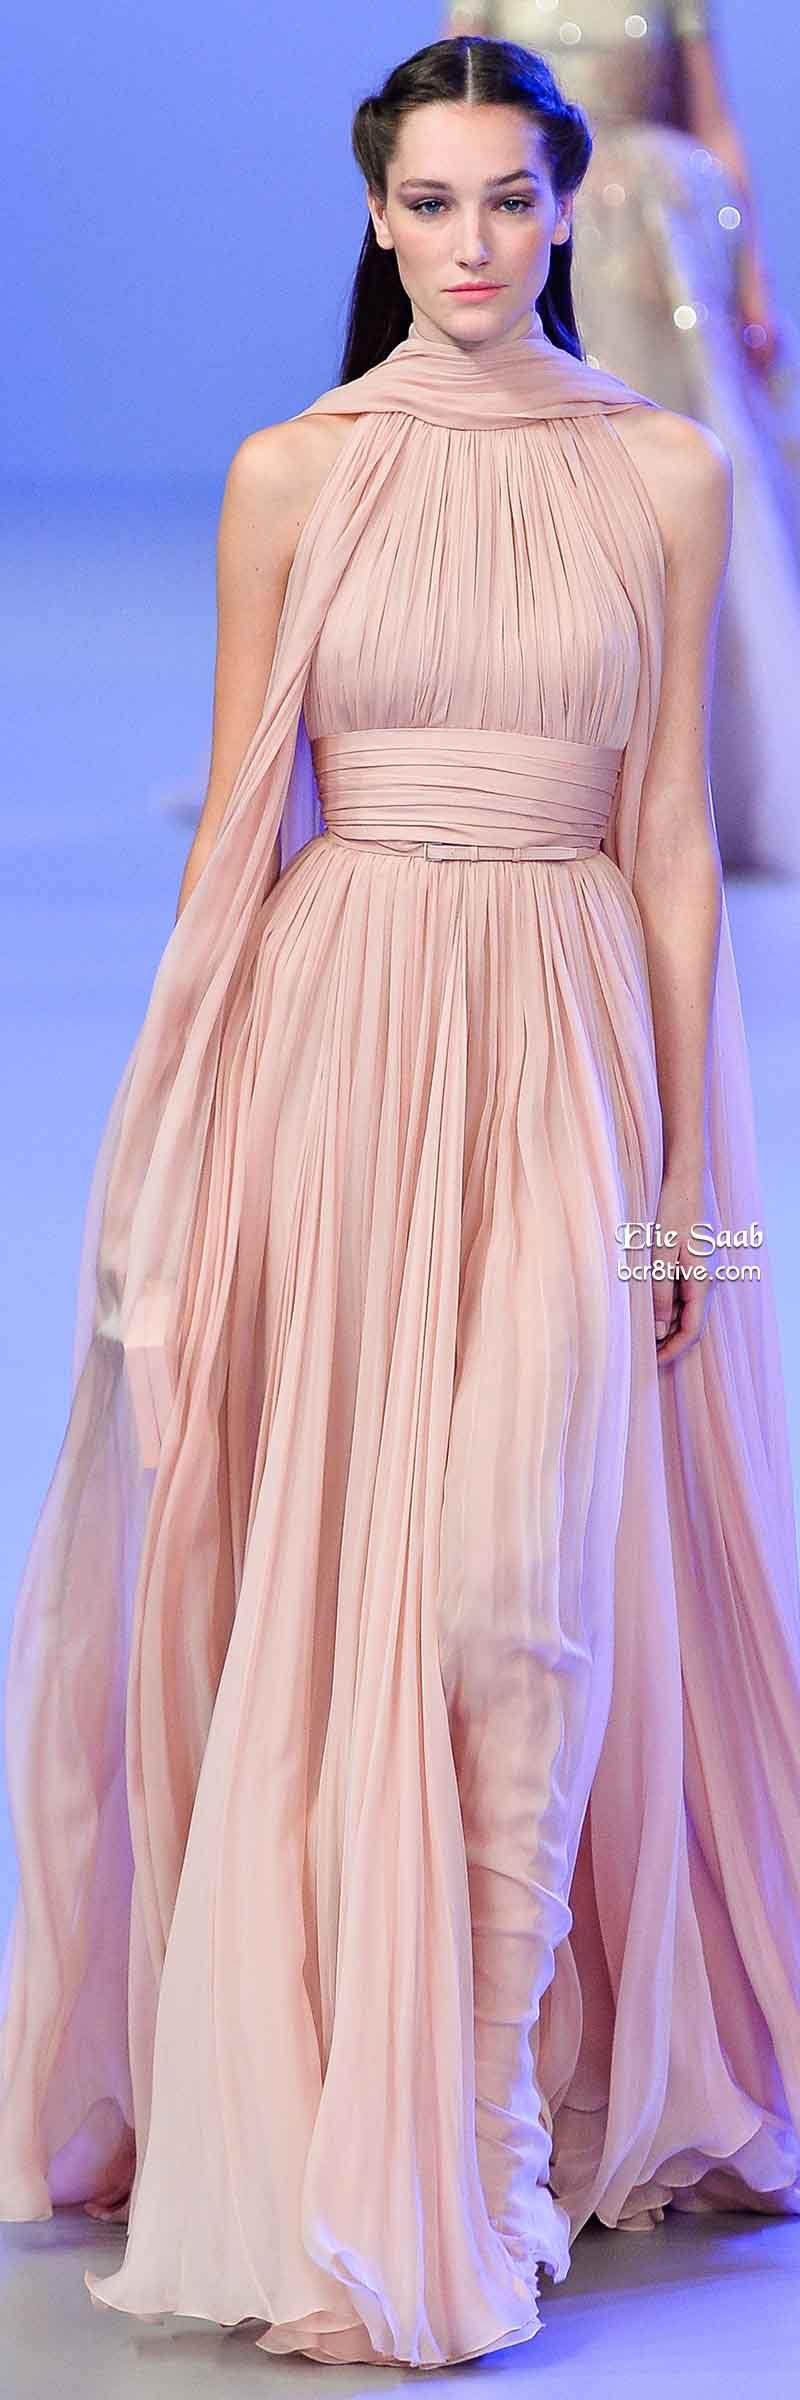 Elie Saab Spring 2014 Couture Collection | Elie saab, Modelo y ...